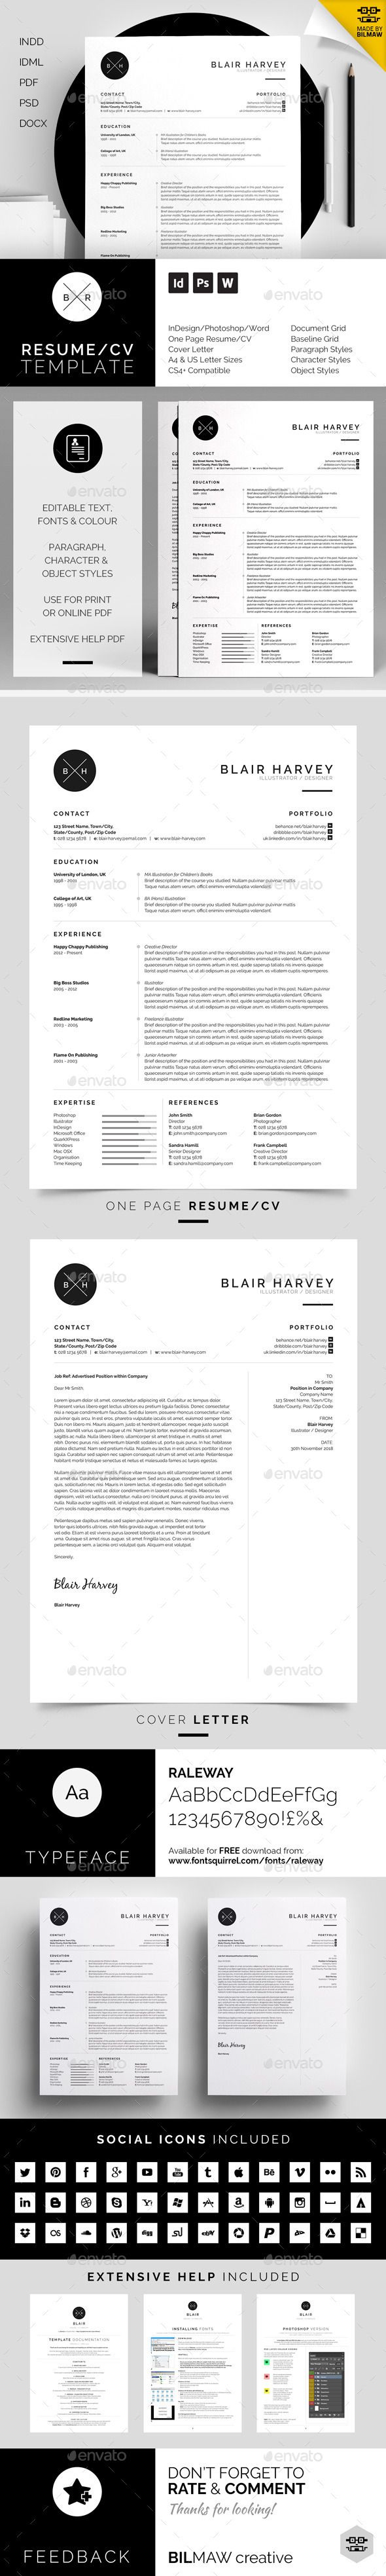 simple design focusing on experience, which includes a single page resume/cv and cover letter.  Download : http://graphicriver.net/item/resumecv-blair/11183416?s_rank=162&ref=pxcr